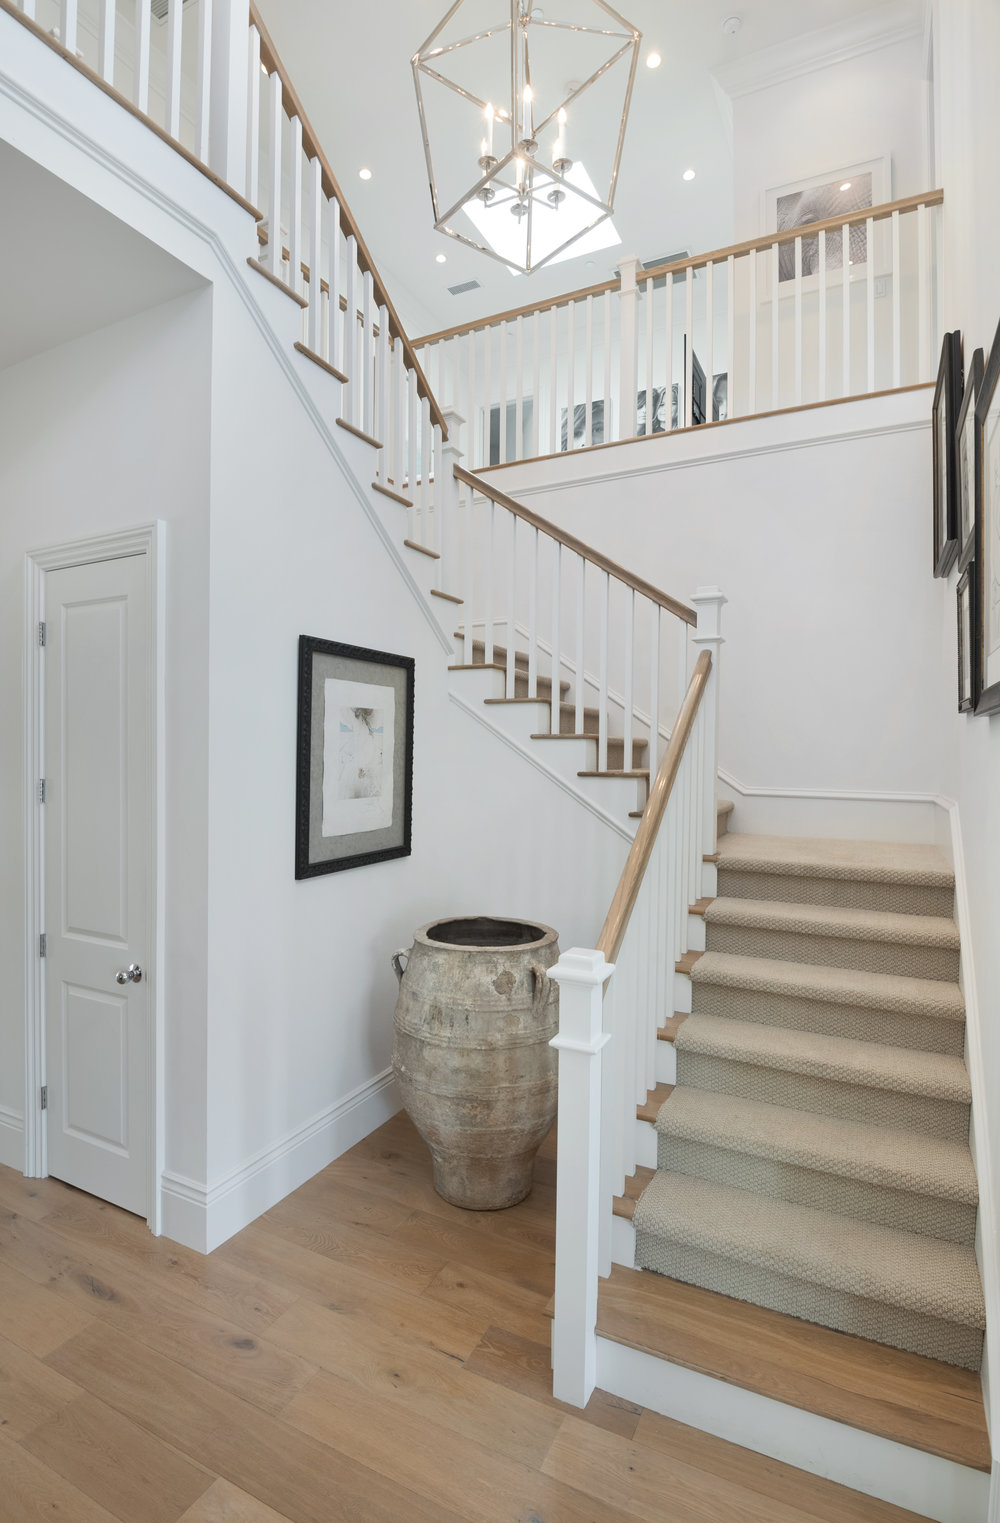 014 stairs 2538 La Condesa Dr Los Angeles CA 90049 For Sale Lease The Malibu Life Team Luxury Real Estate.jpg